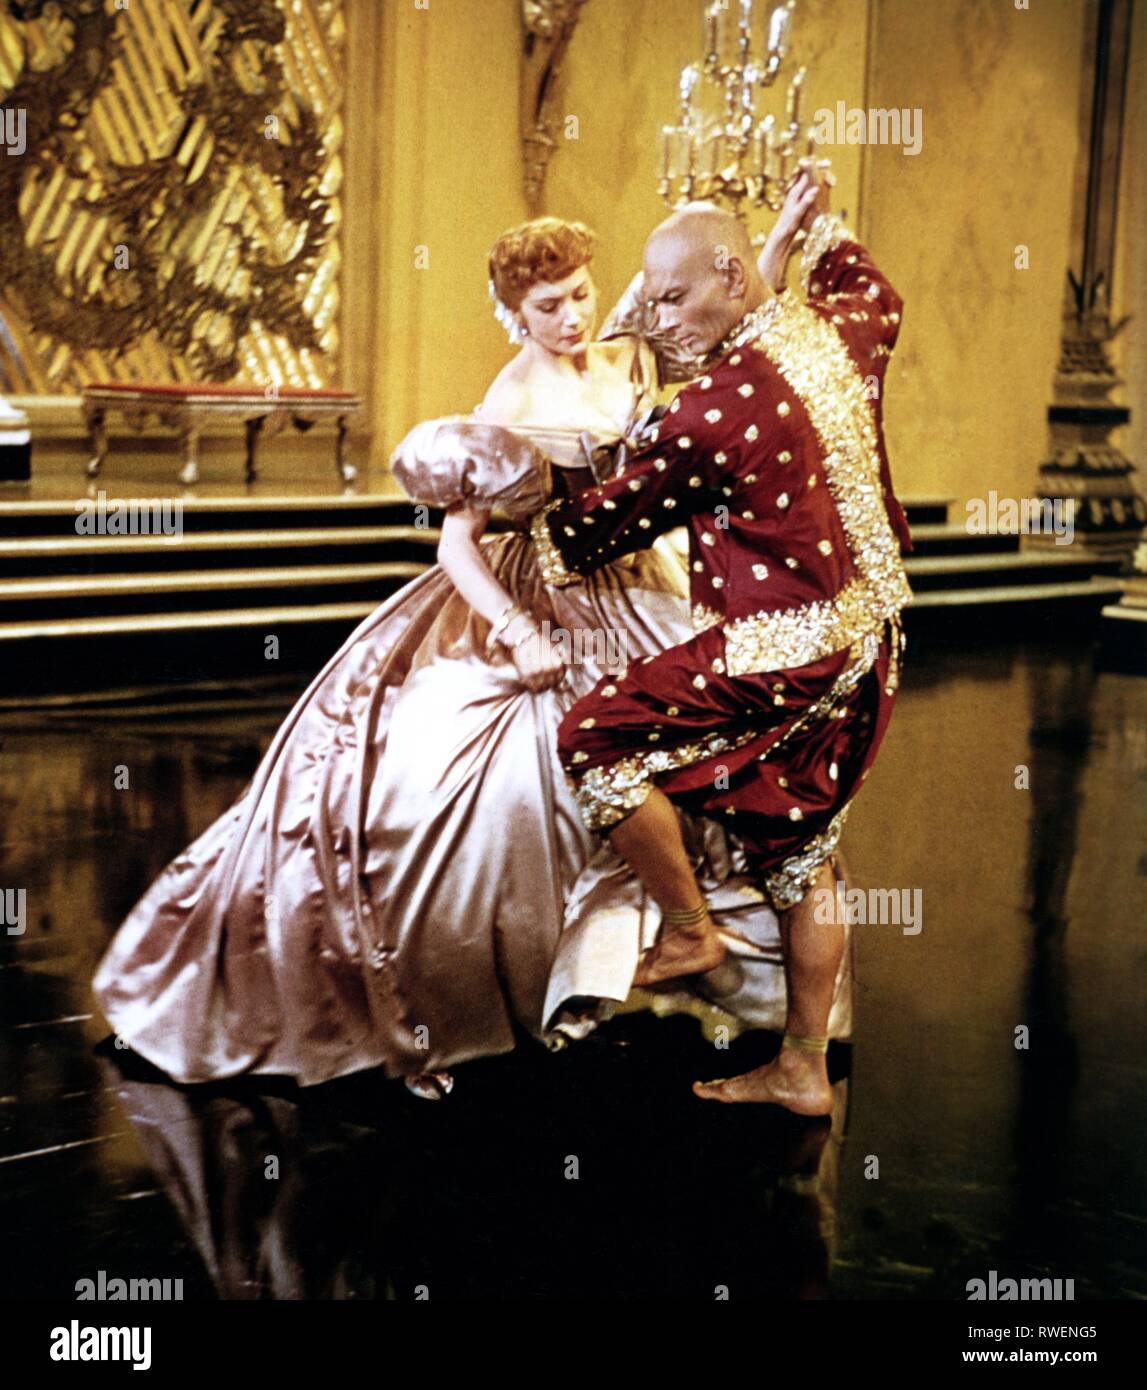 KERR,BRYNNER, THE KING AND I, 1956 Stock Photo